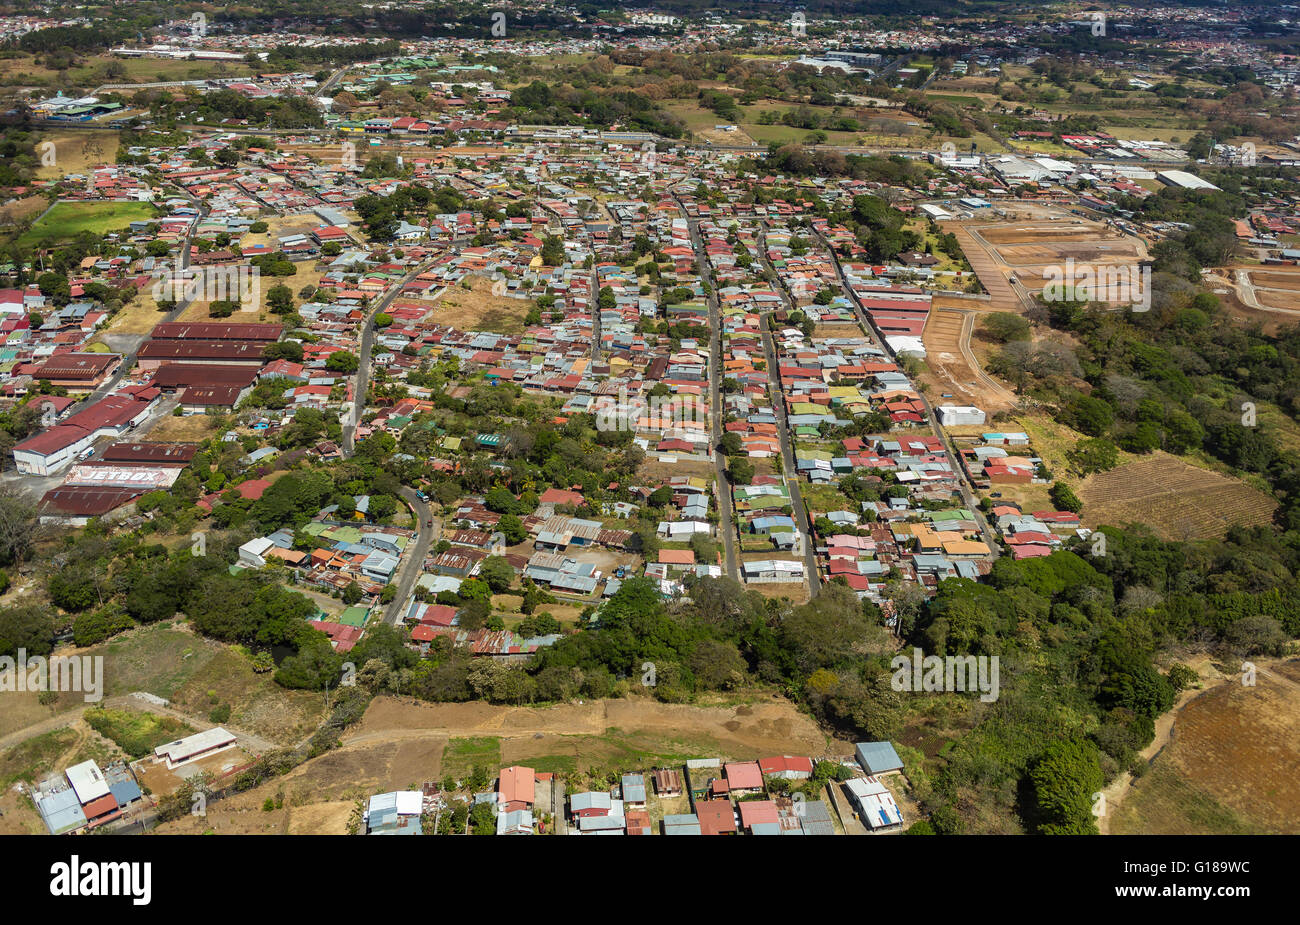 ALAJUELA, COSTA RICA - aerial view of housing and commercial activity - Stock Image